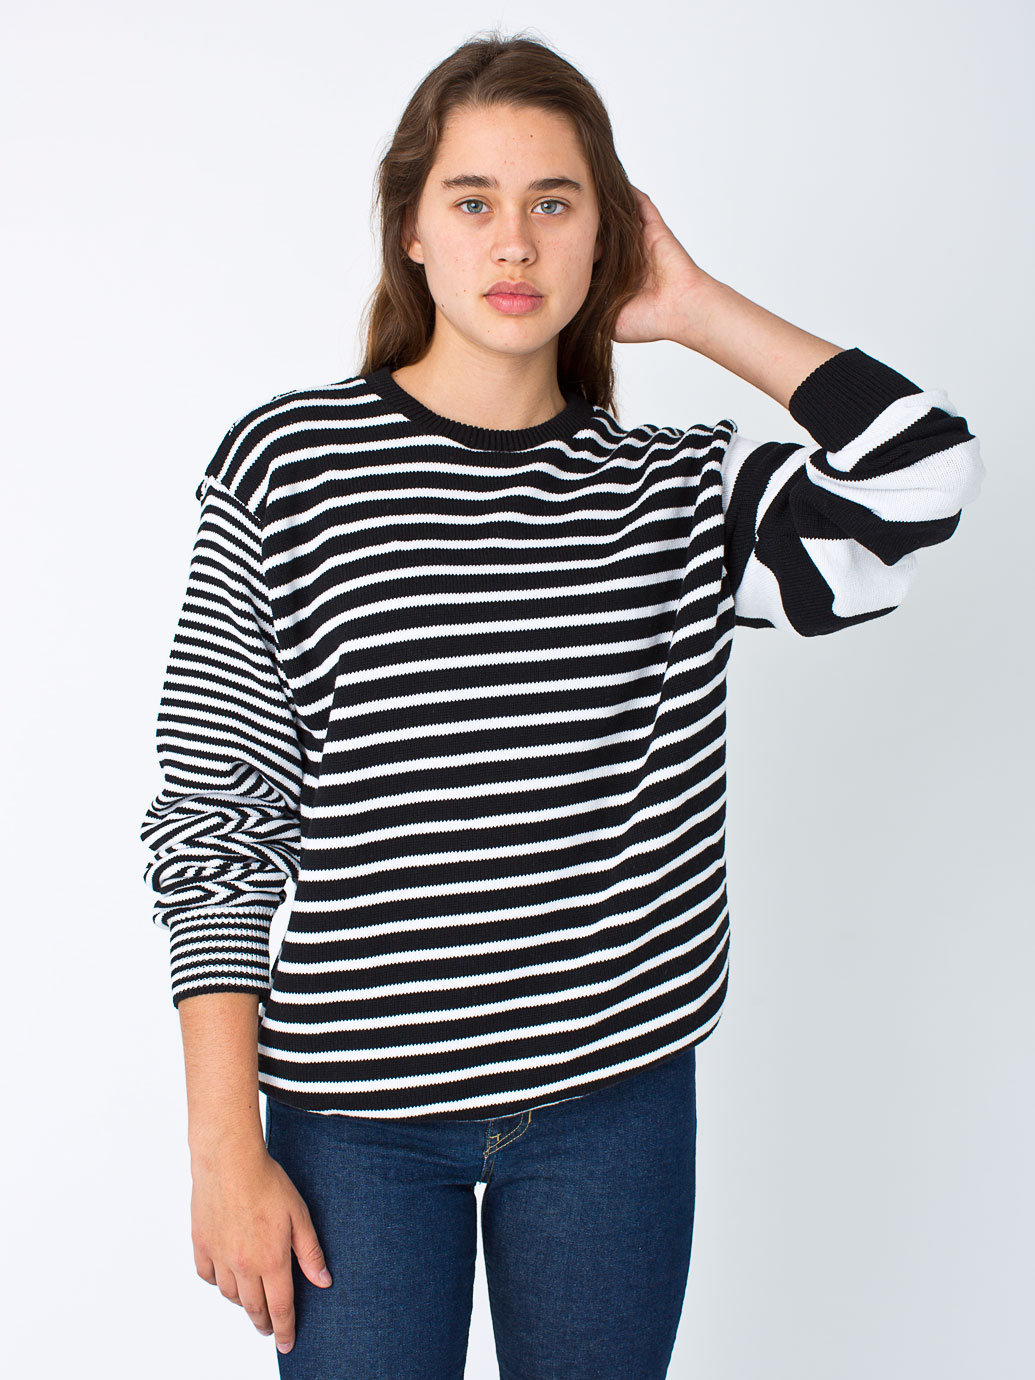 Unisex Recycled Cotton Mixed Stripe Pullover | American Apparel